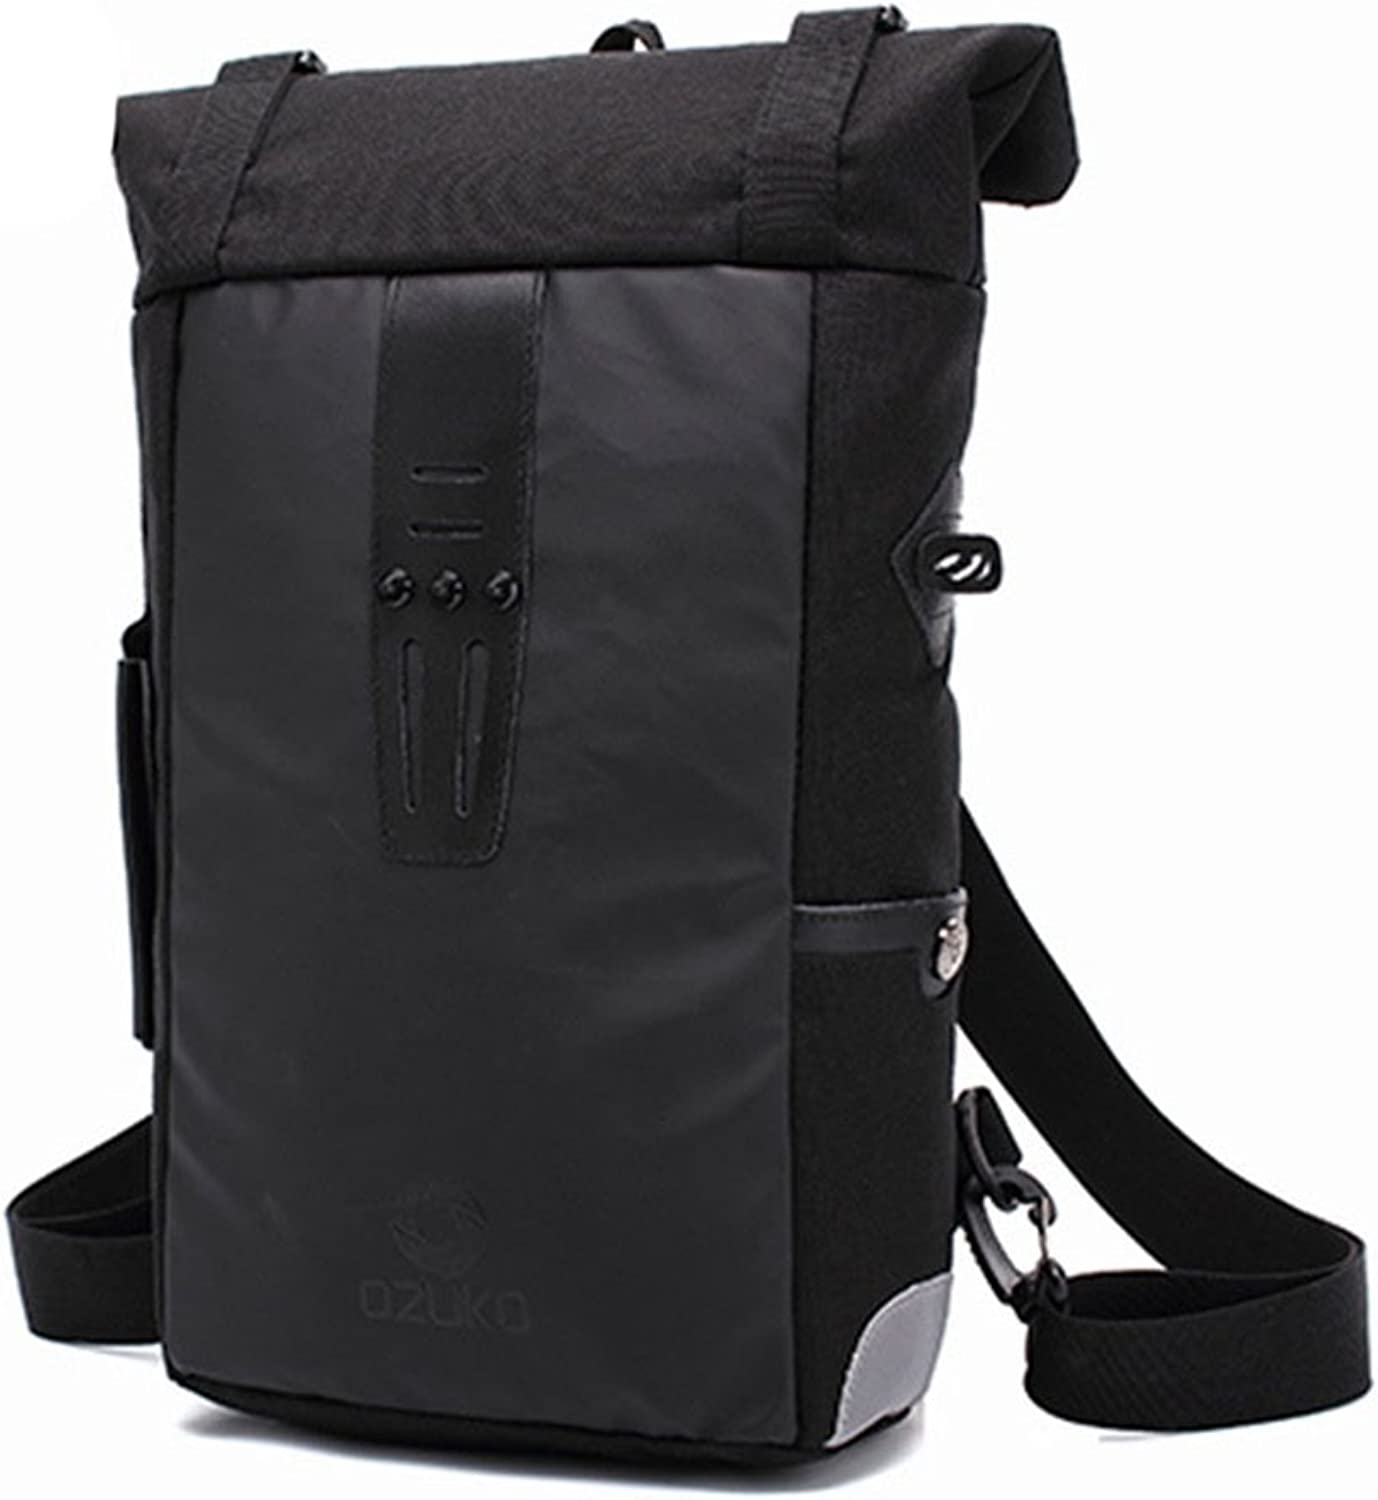 Large Capacity Travel Rucksack Men's Travel Backpack Outdoor Hiking Casual Waterproof Oxford Cloth Laptop Daypack Commerce Business Trip (color  Black) Comfort Laptop Storage Backpack